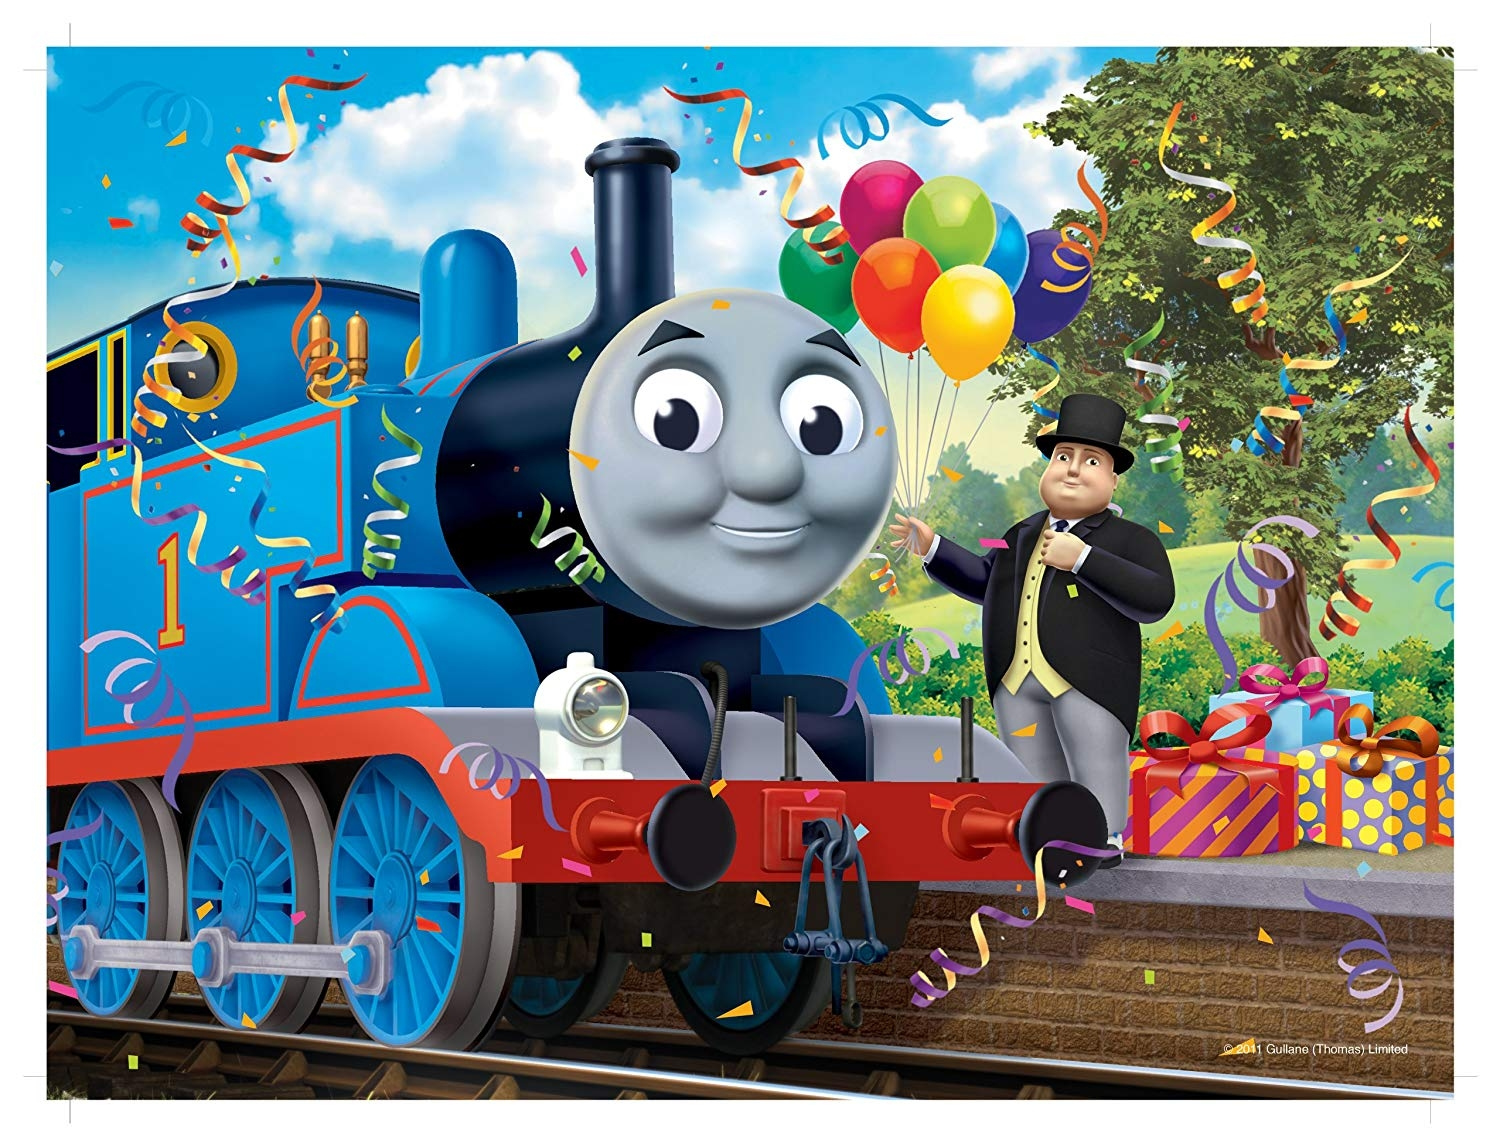 Thomas The Tank Engine Wallpaper Posted By Ryan Thompson